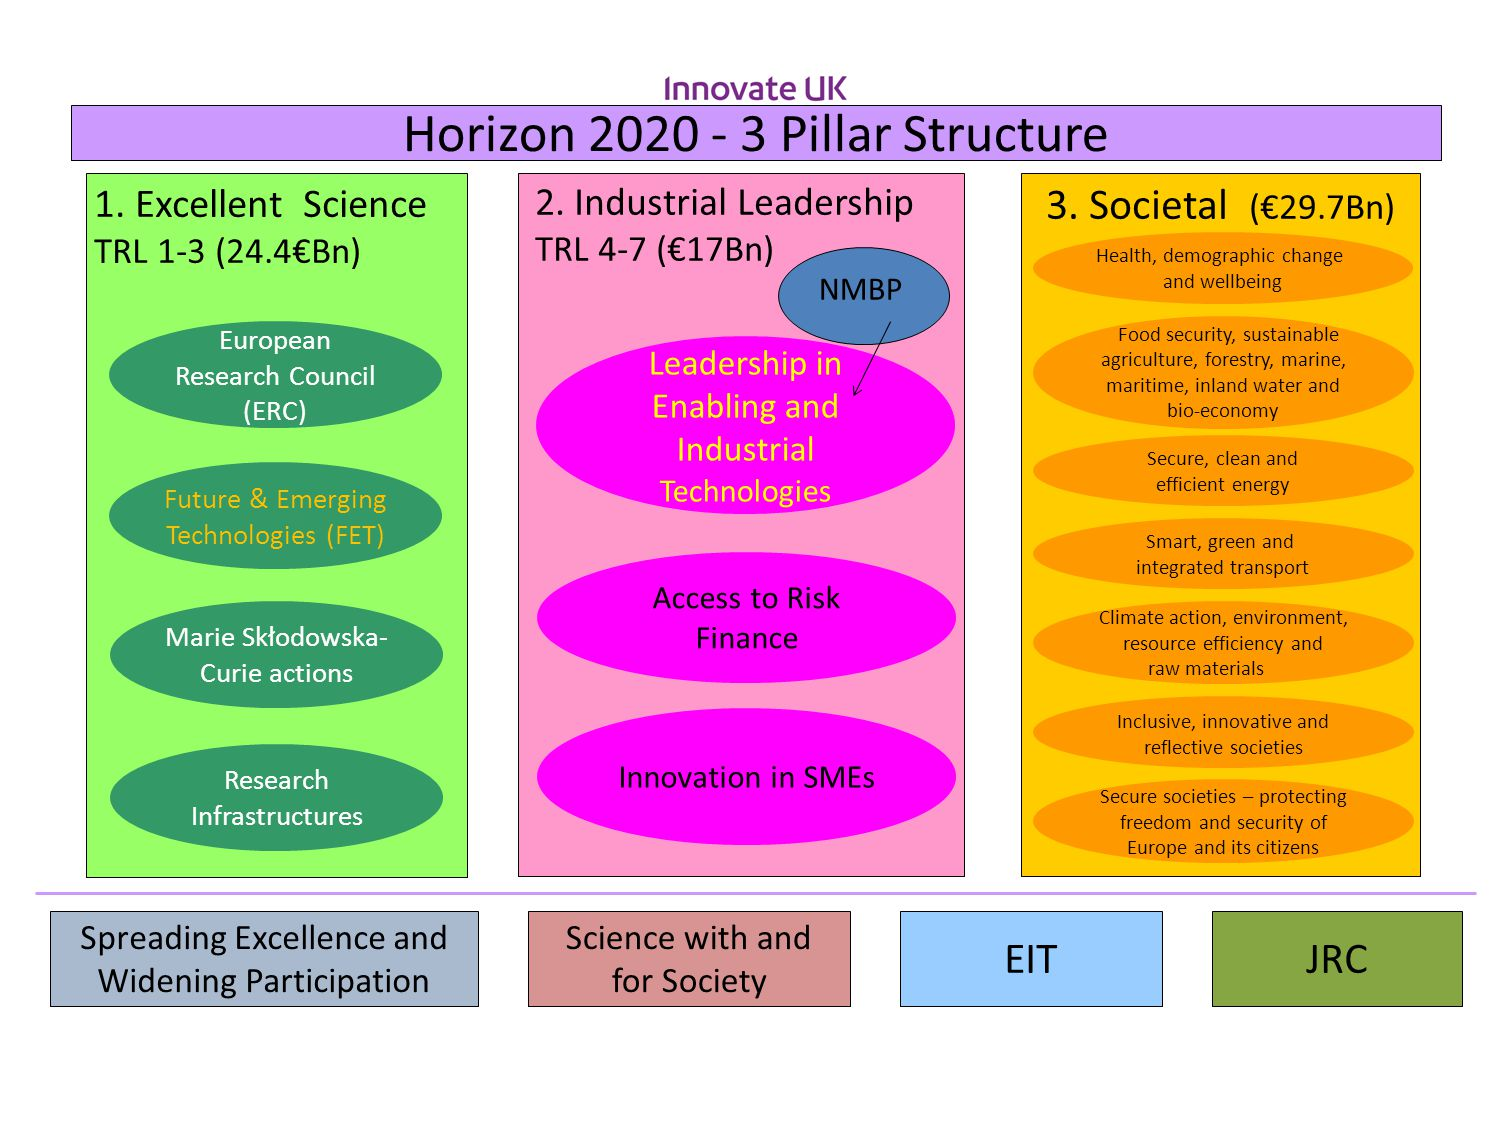 JRC Horizon 2020 - 3 Pillar Structure 2. Industrial Leadership TRL 4-7 (€17Bn) Innovation in SMEs Access to Risk Finance Leadership in Enabling and In